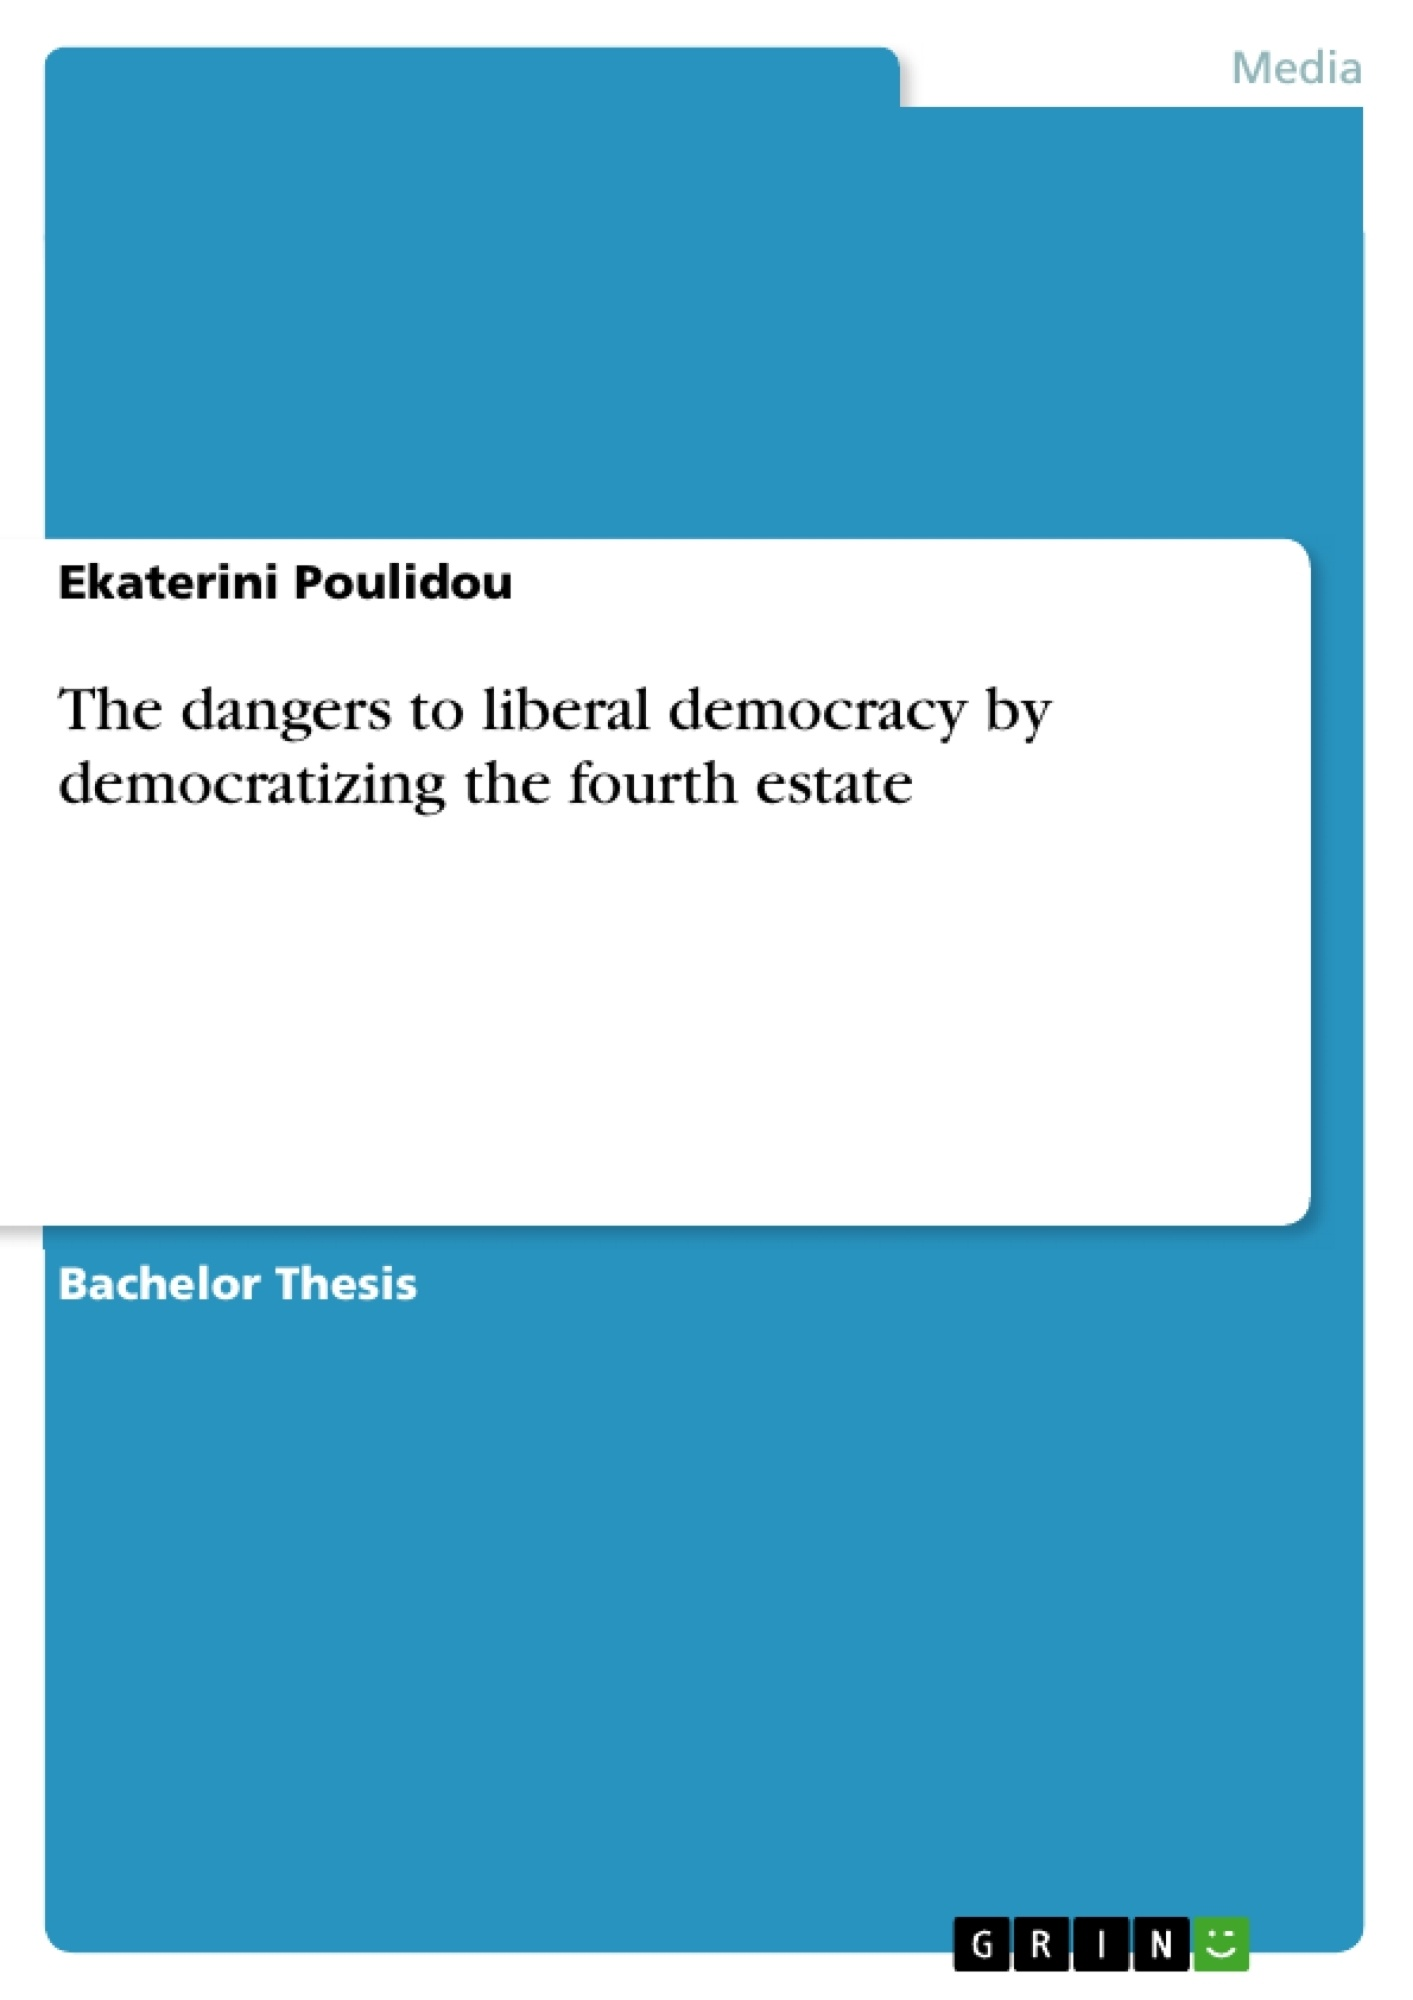 Title: The dangers to liberal democracy by democratizing the fourth estate